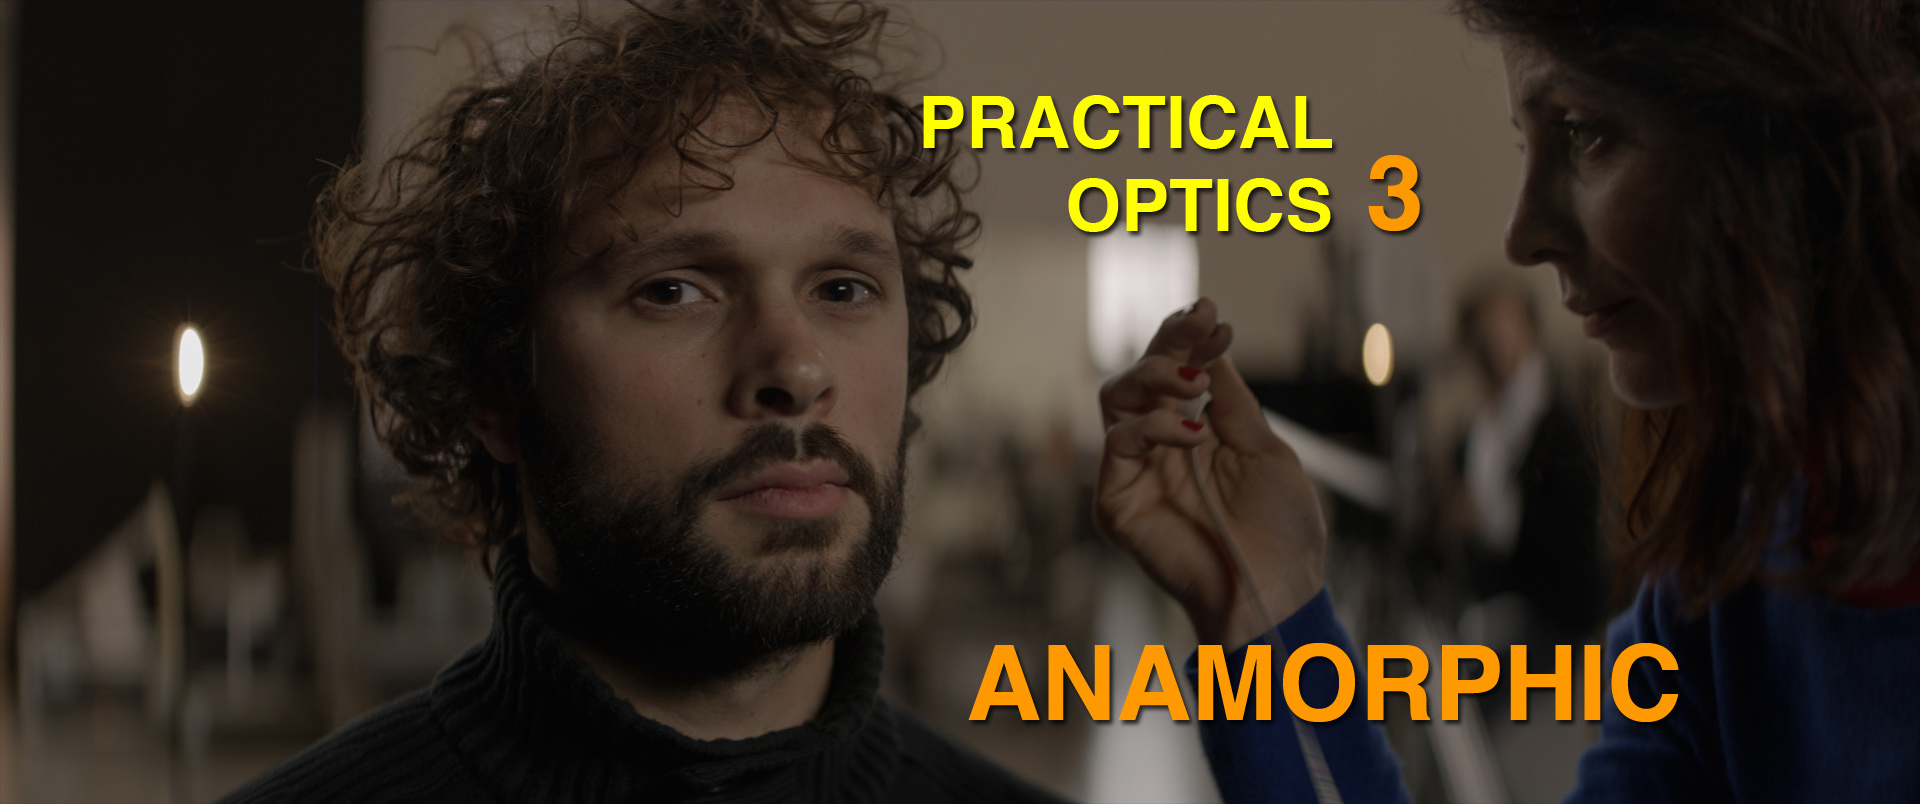 Practical Optics 3 Anamorphic Thefilmbook Hd